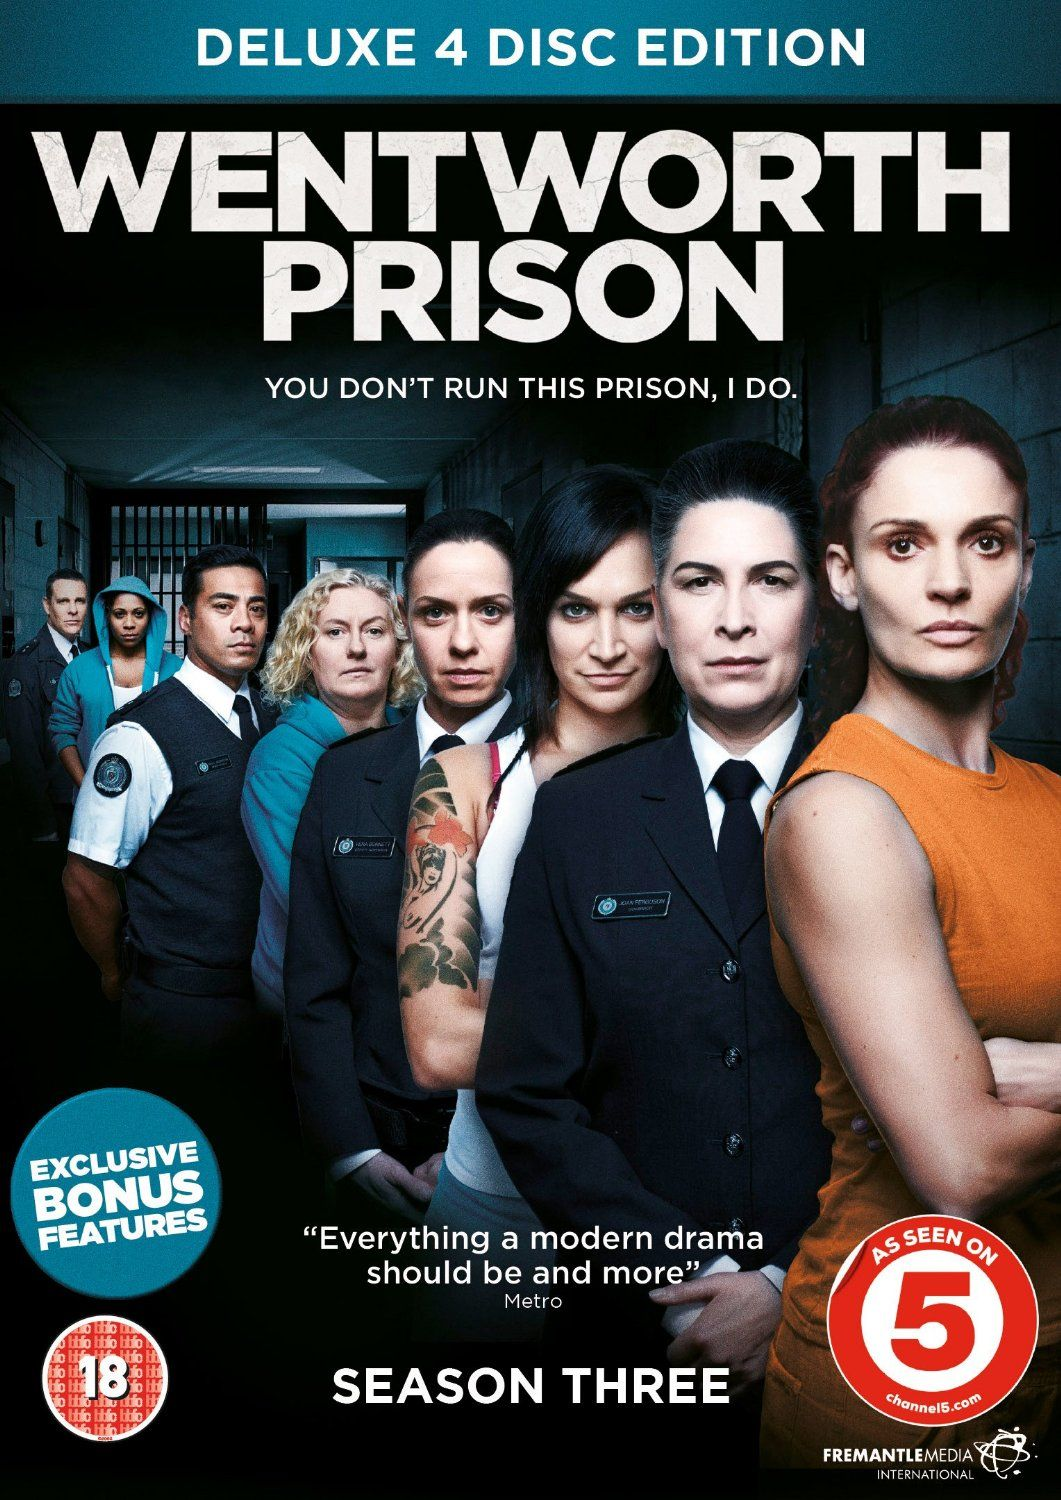 Wentworth Prison Season 3 [DVD] Amazon.co.uk Danielle